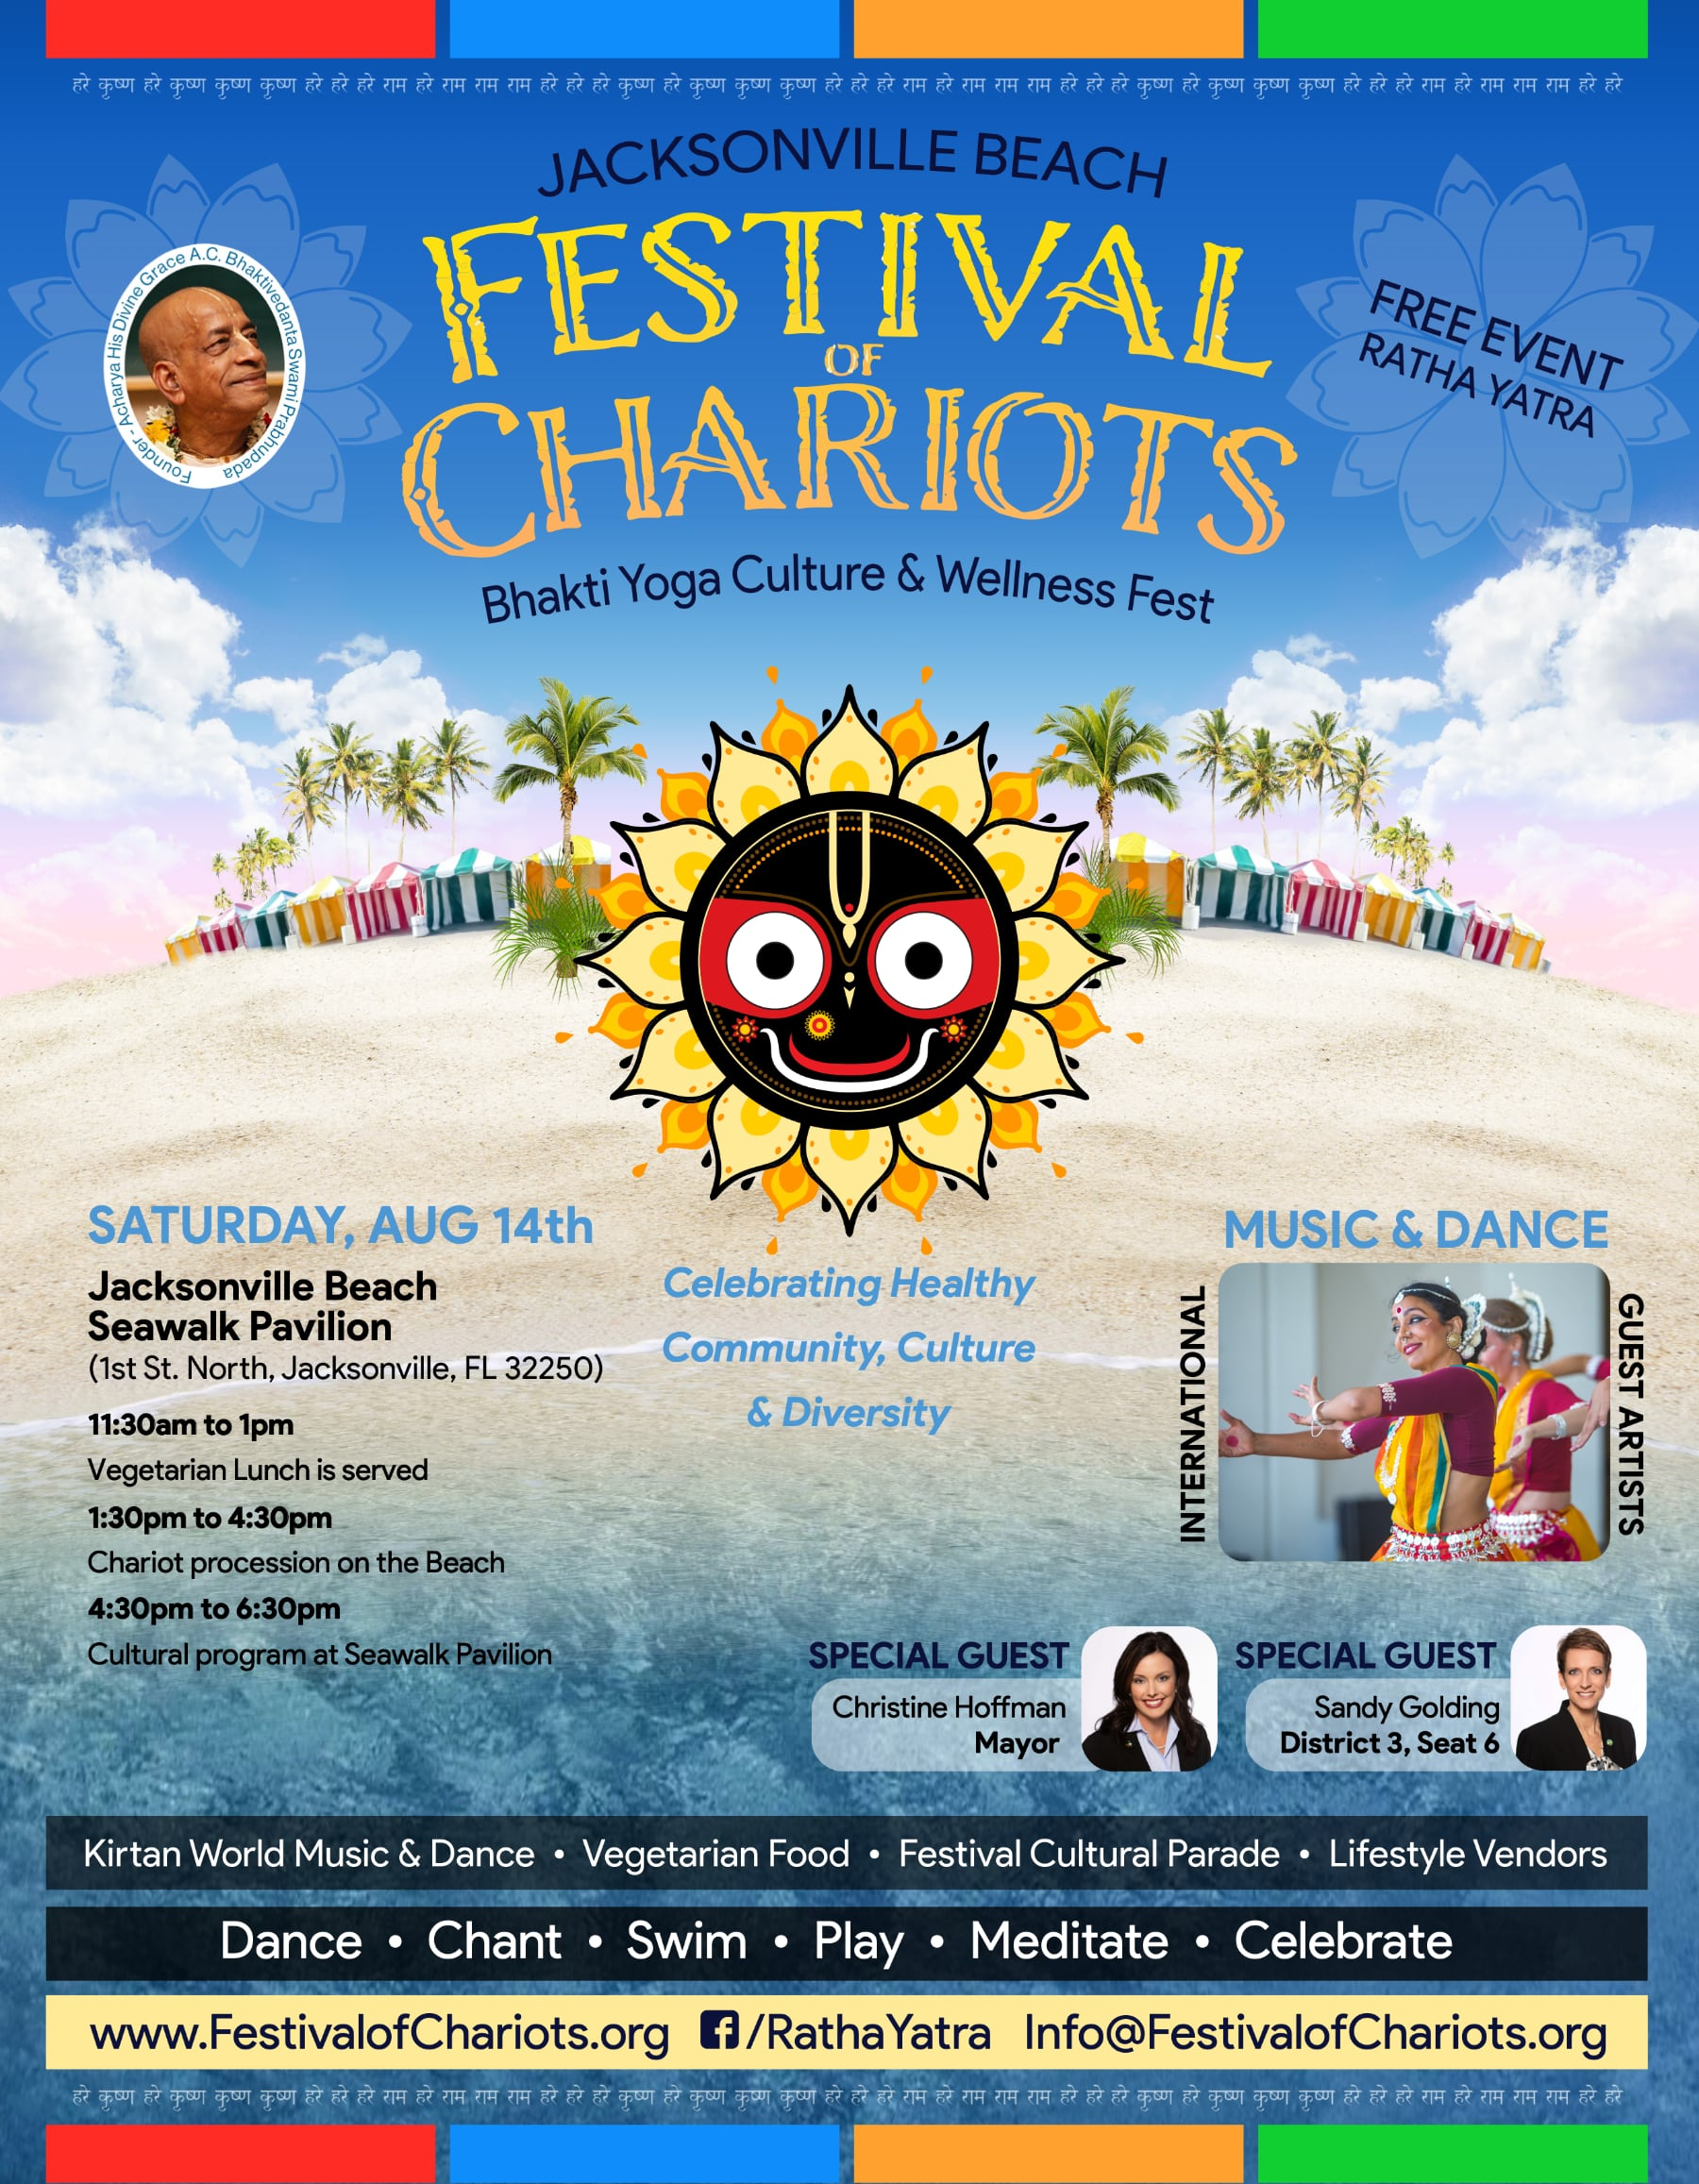 Poster for Jacksonville Beach Ratha-yatra on August 14, 2021